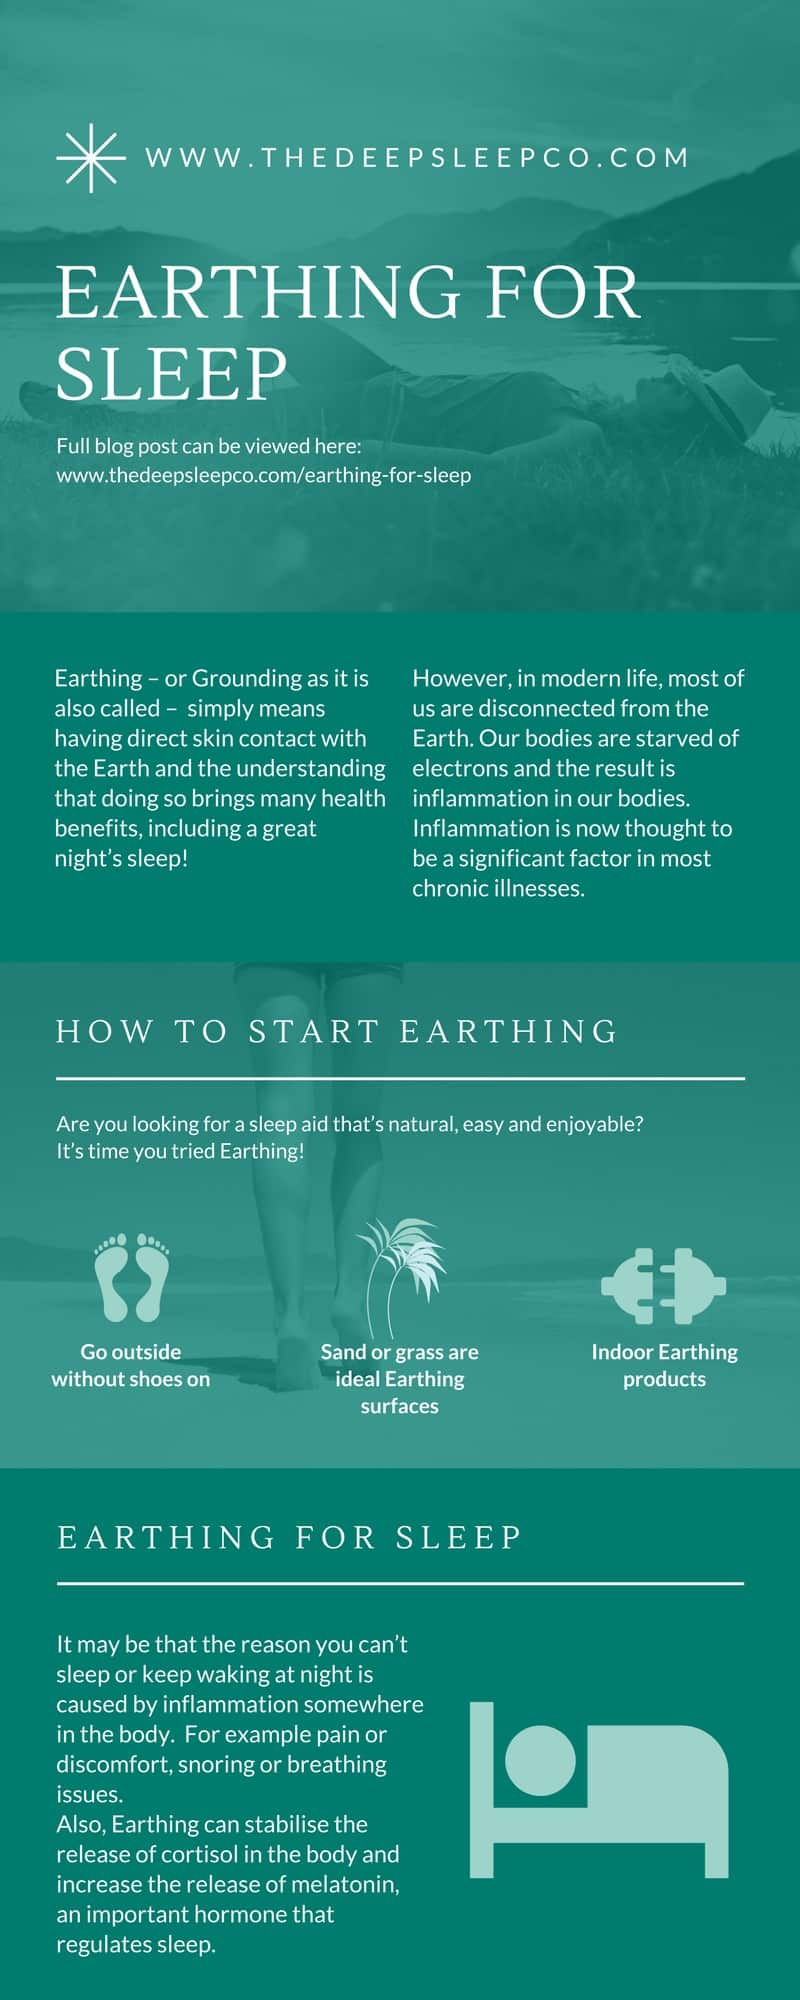 Earthing for sleep